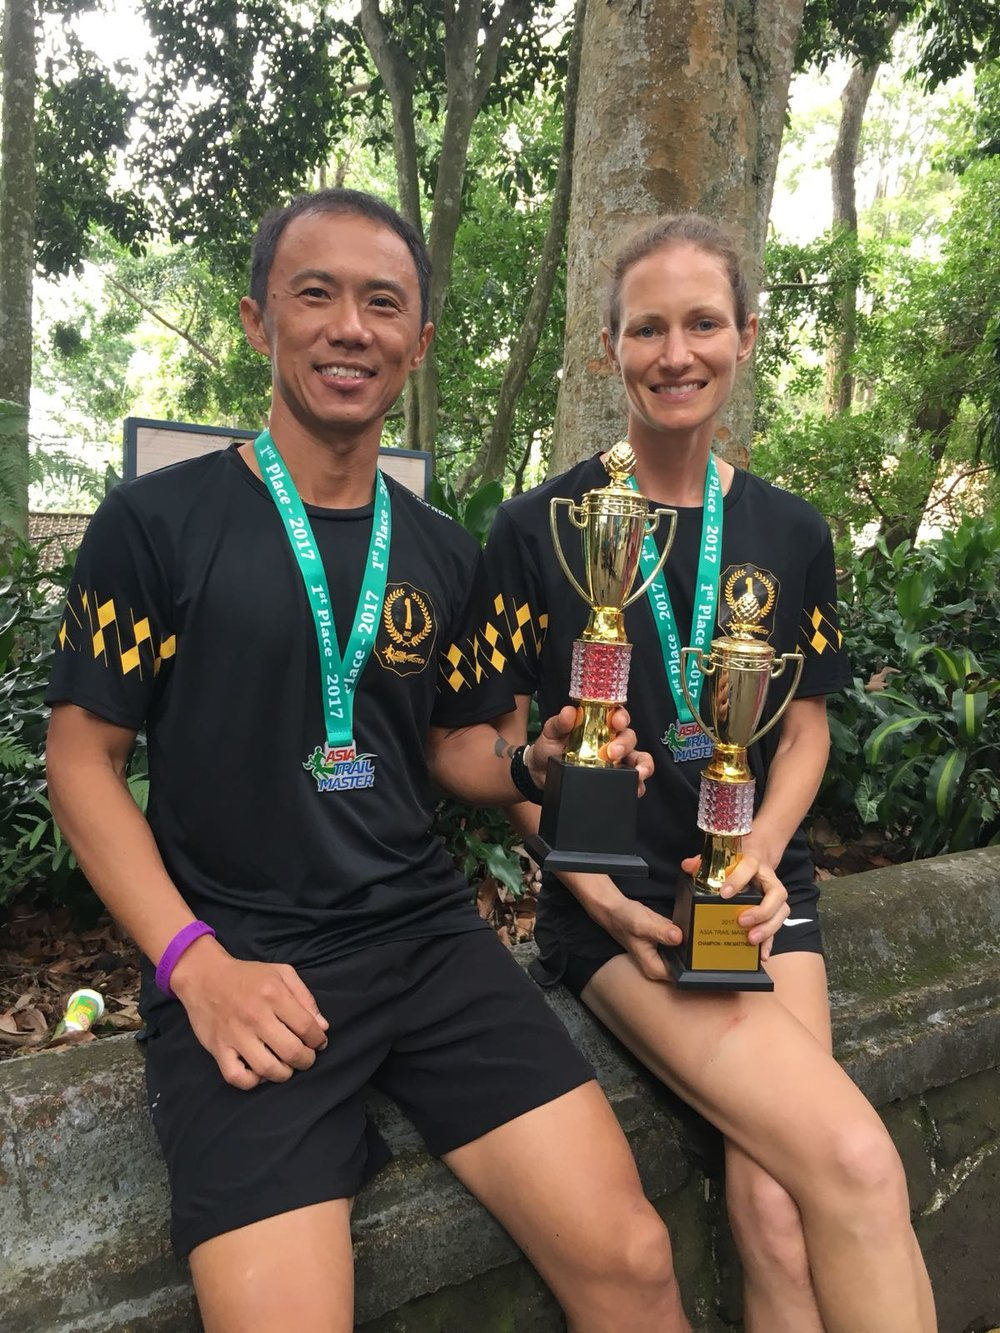 Steven Ong and Kim Matthews were celebrated as the 2017 ATM Champions